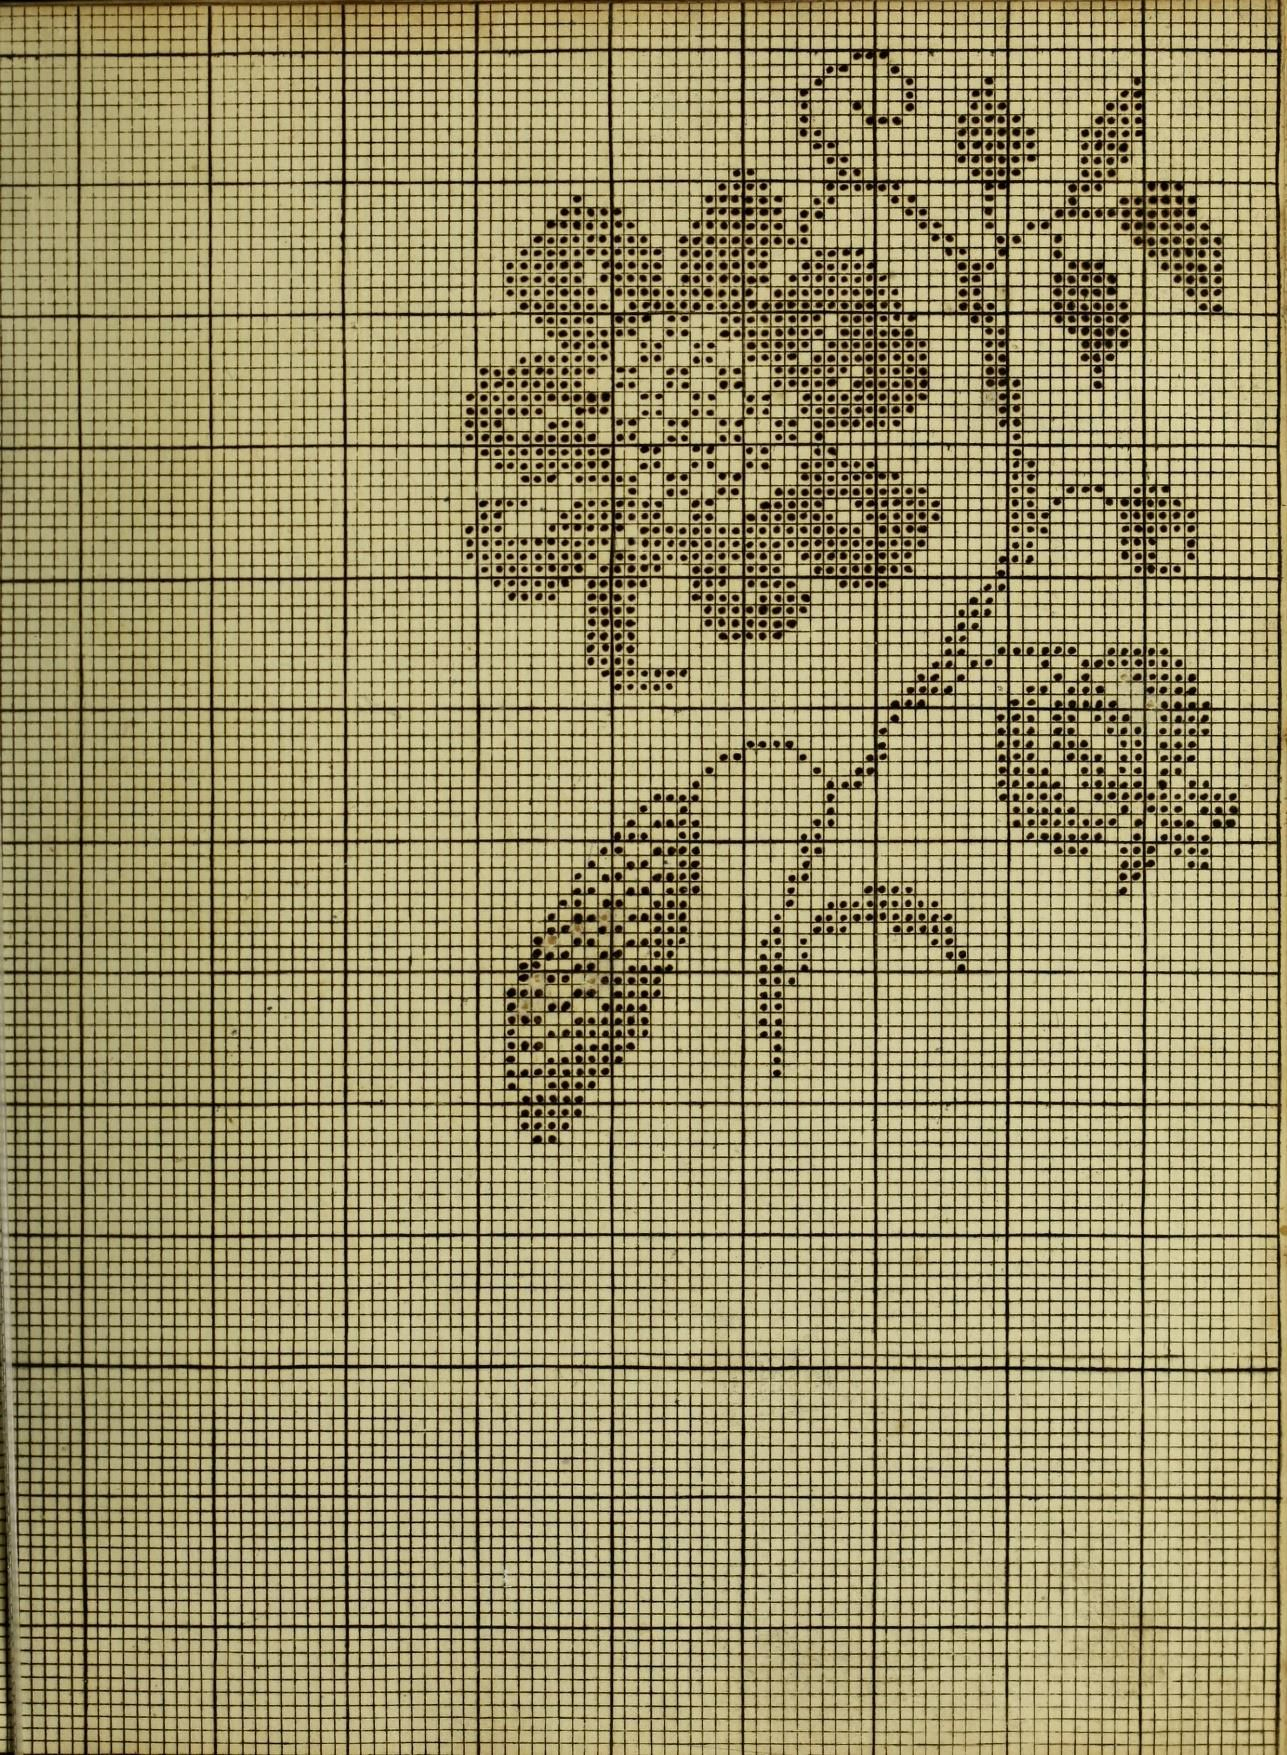 Embroidery patterns embroidery patterns pinterest embroidery